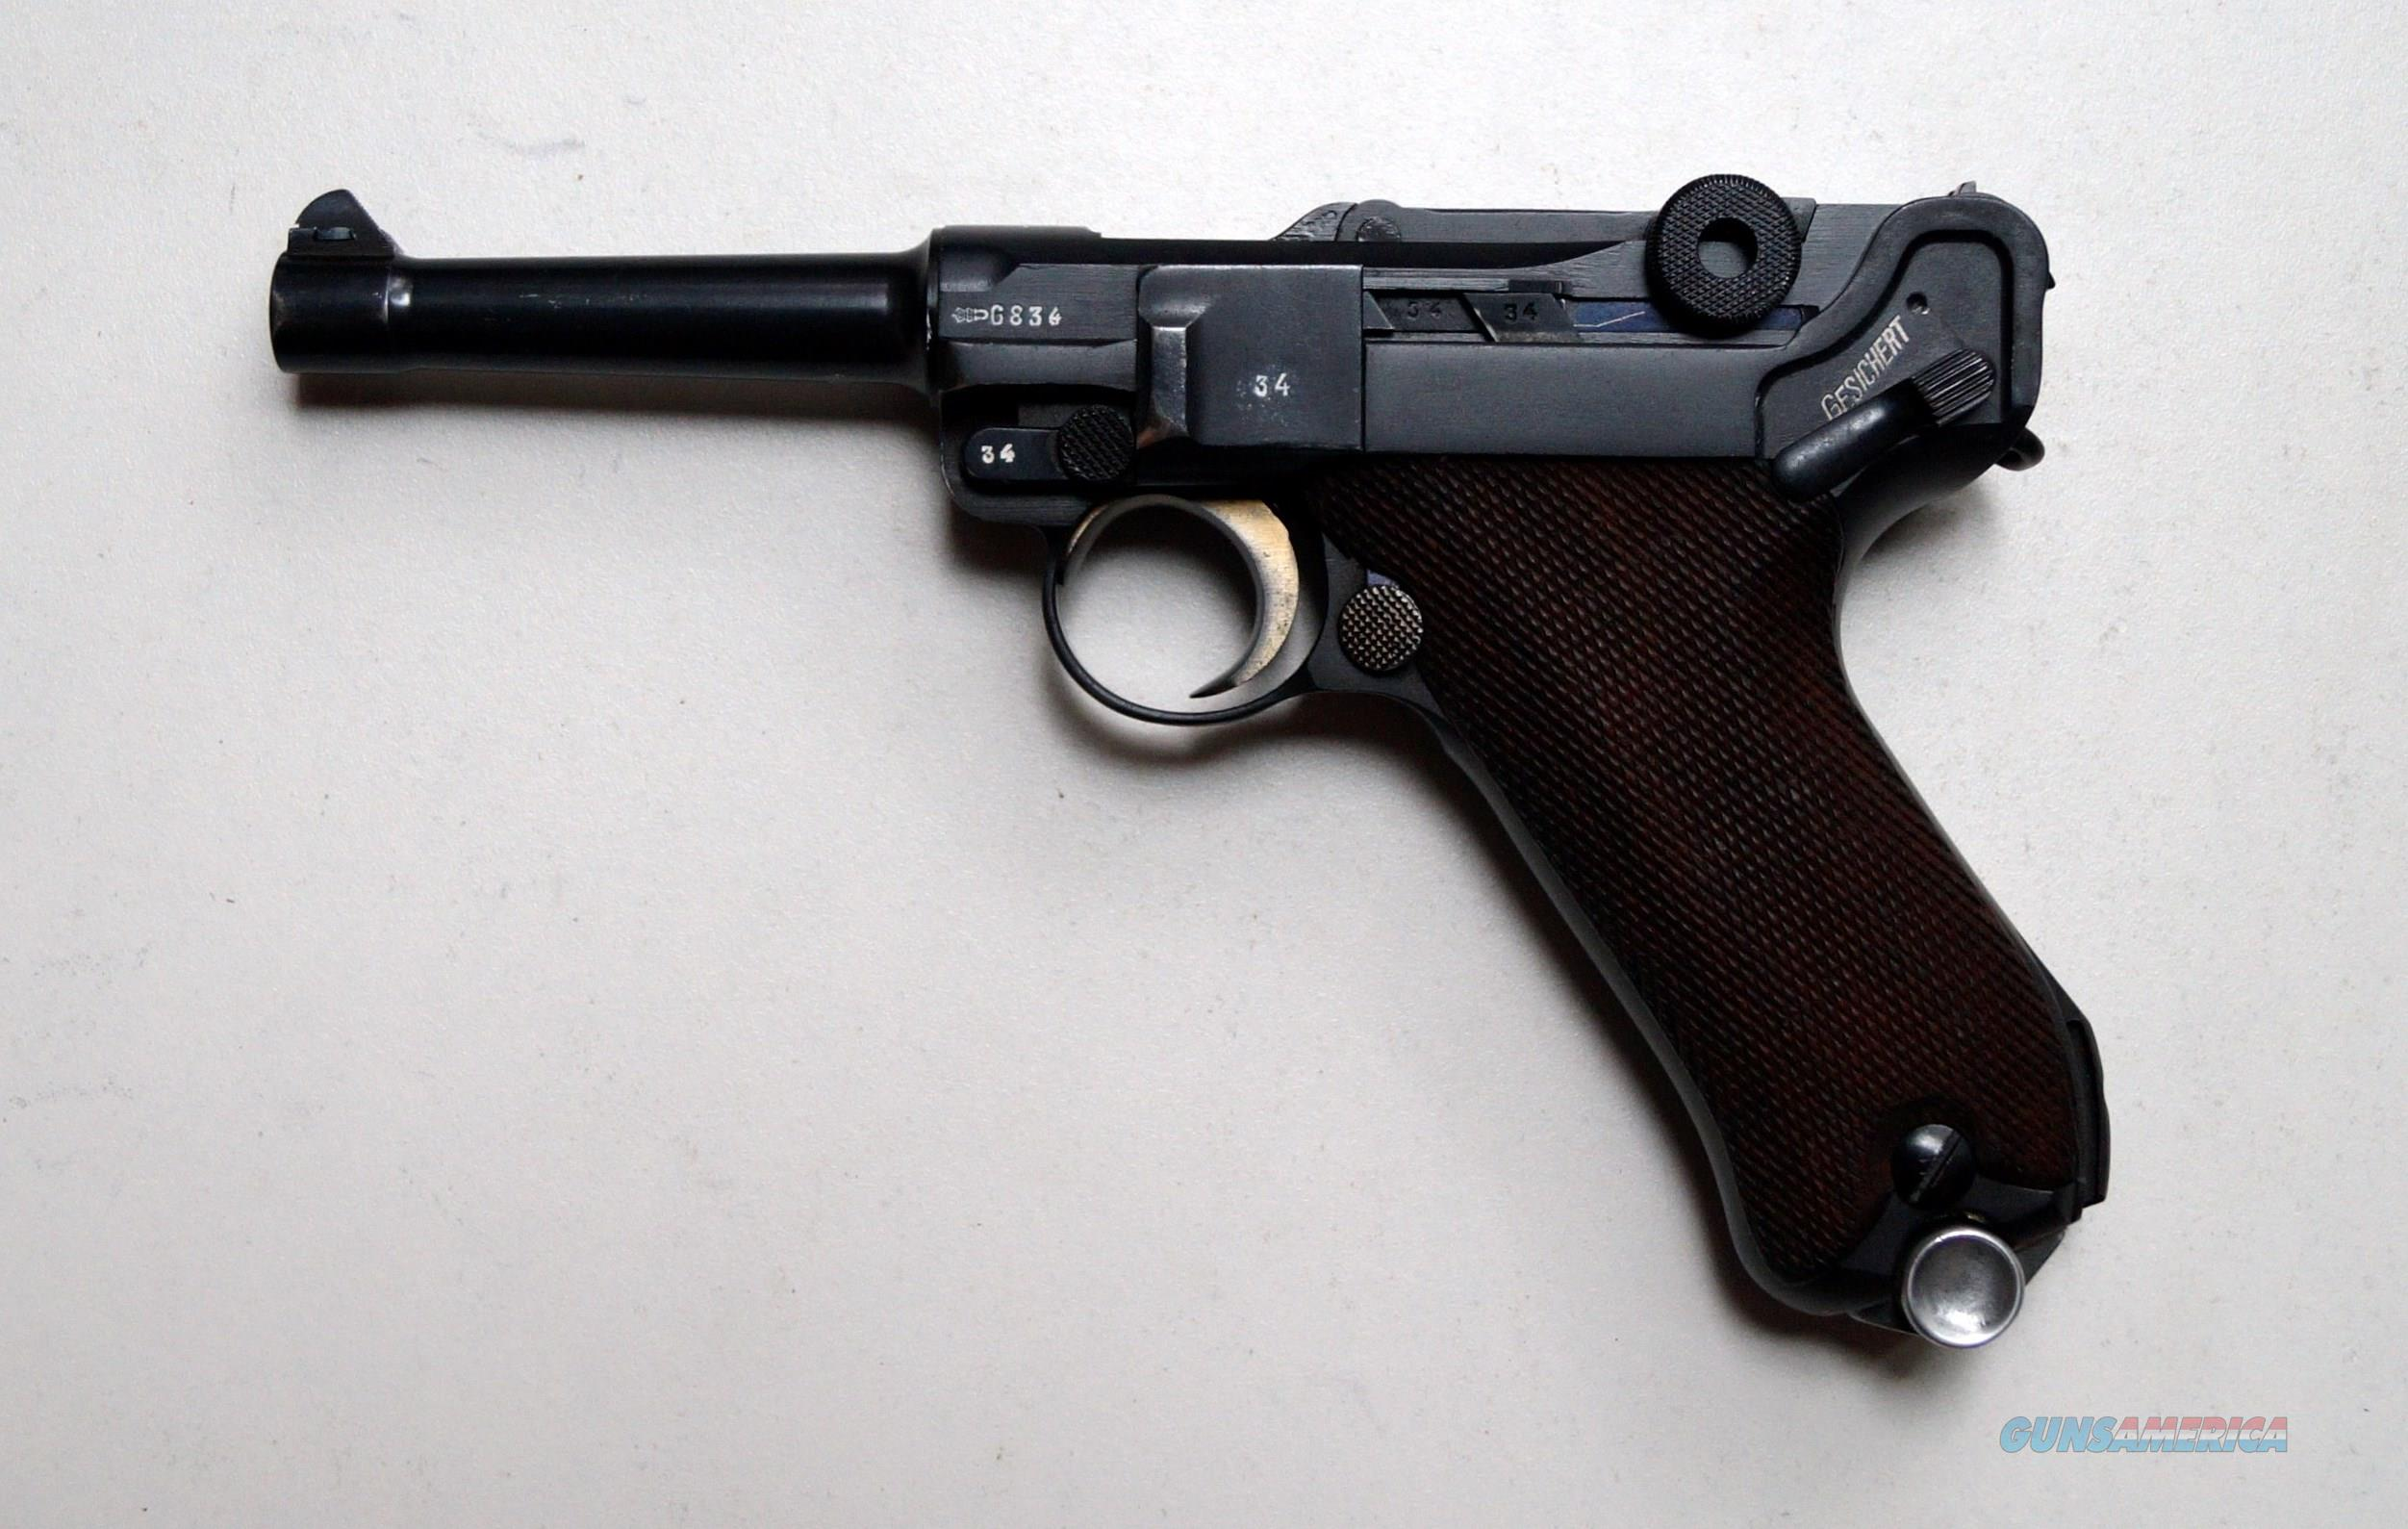 1937 MAUSER BANNER COMMERCIAL GERMAN LUGER WITH 1 MATCHING # MAGAZINE  Guns > Pistols > Luger Pistols